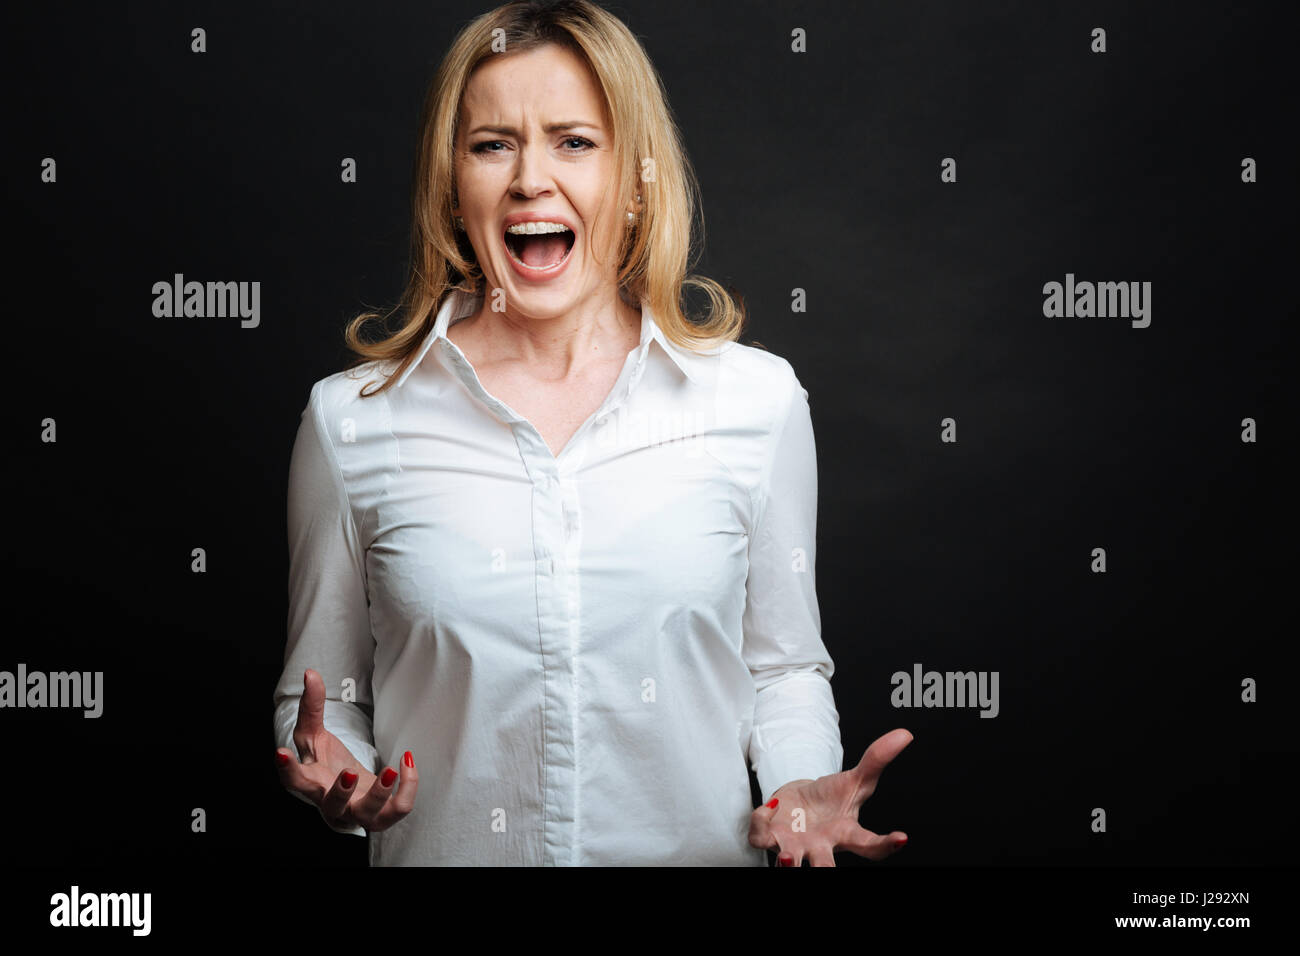 Irritated mature woman shouting in the studio - Stock Image